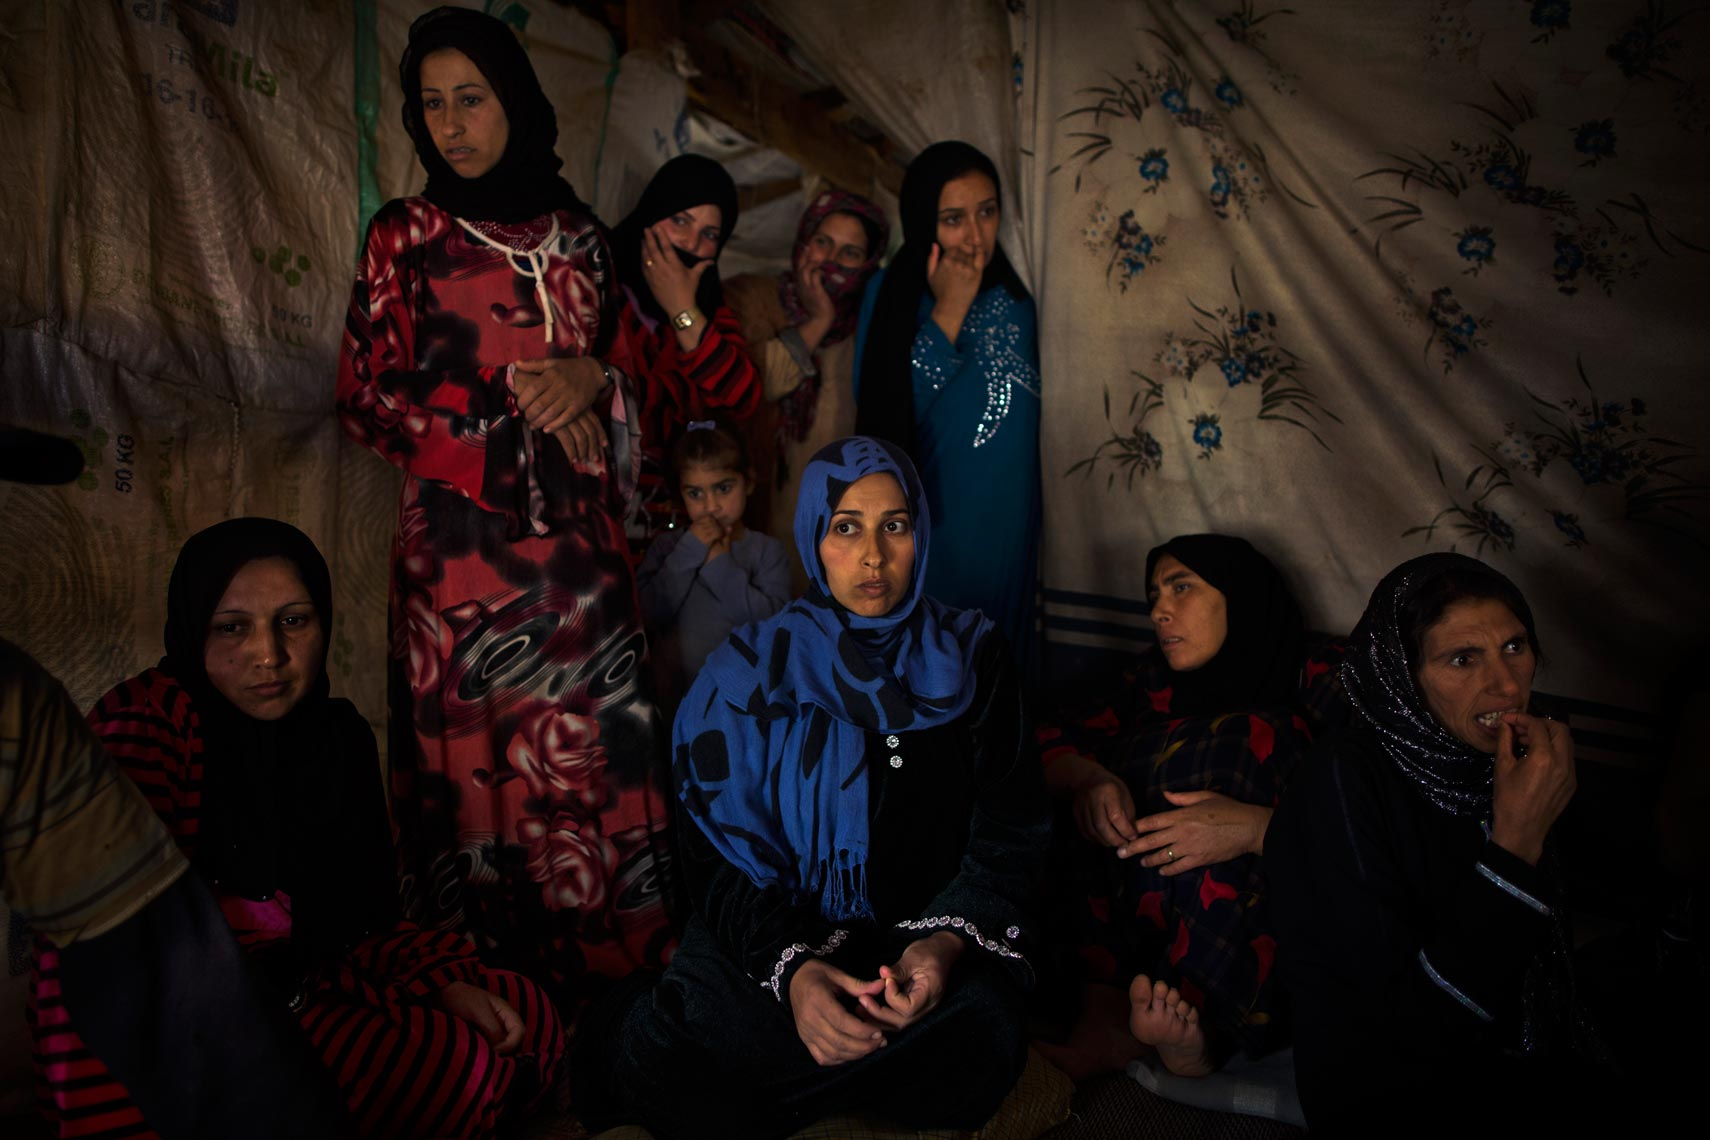 Syrian refugee women